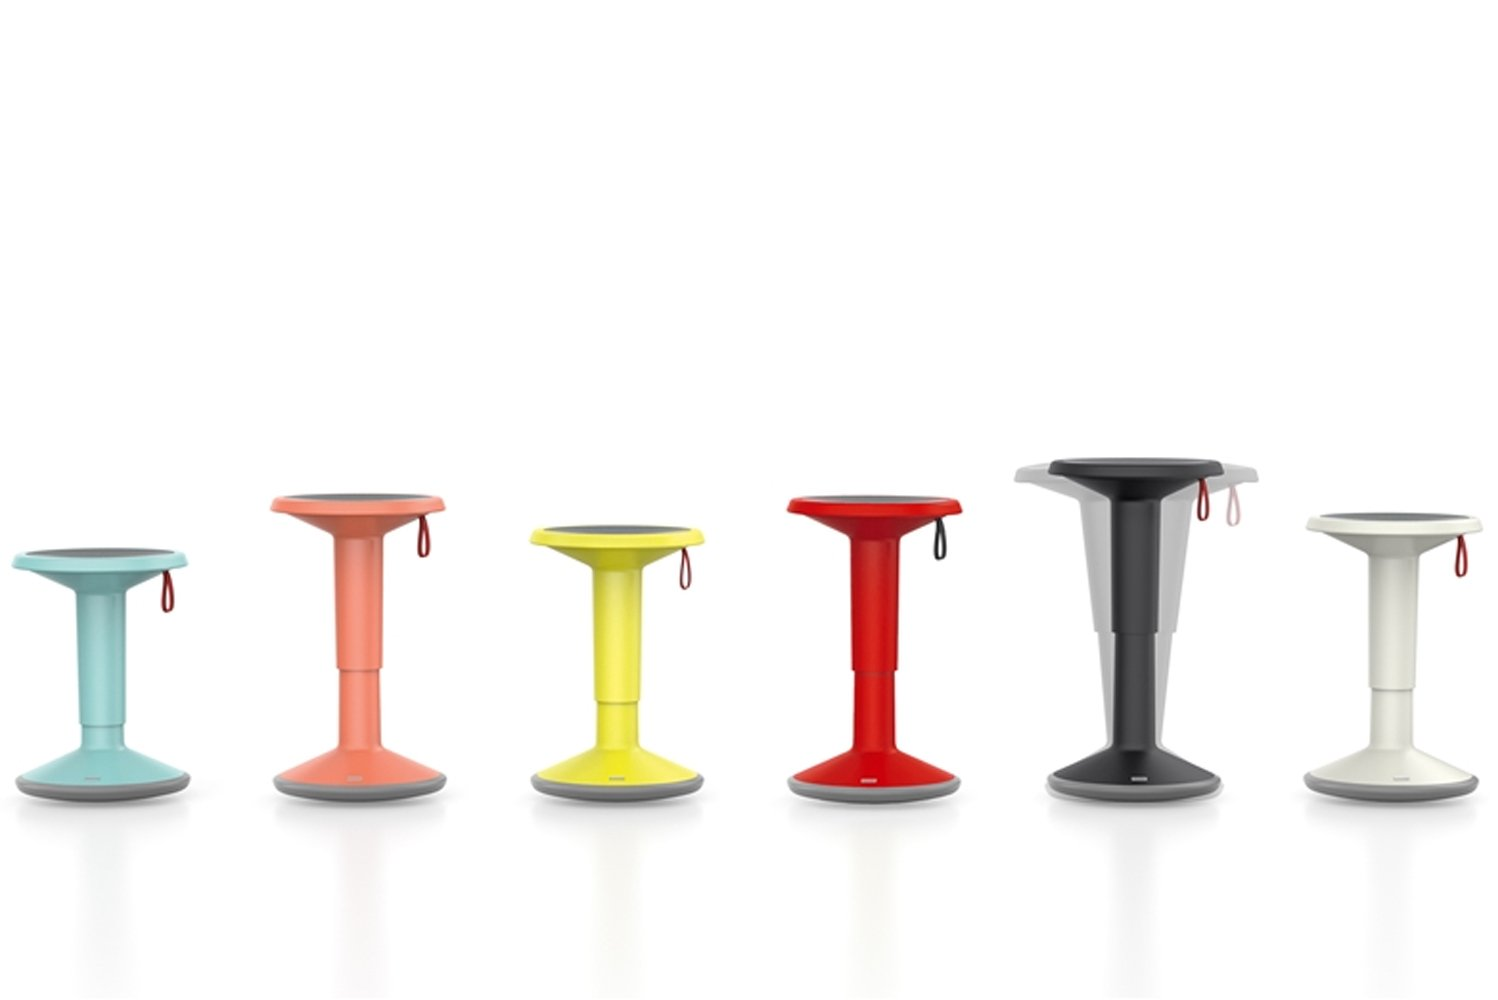 Introducing the Up stool by Fluid Concepts.